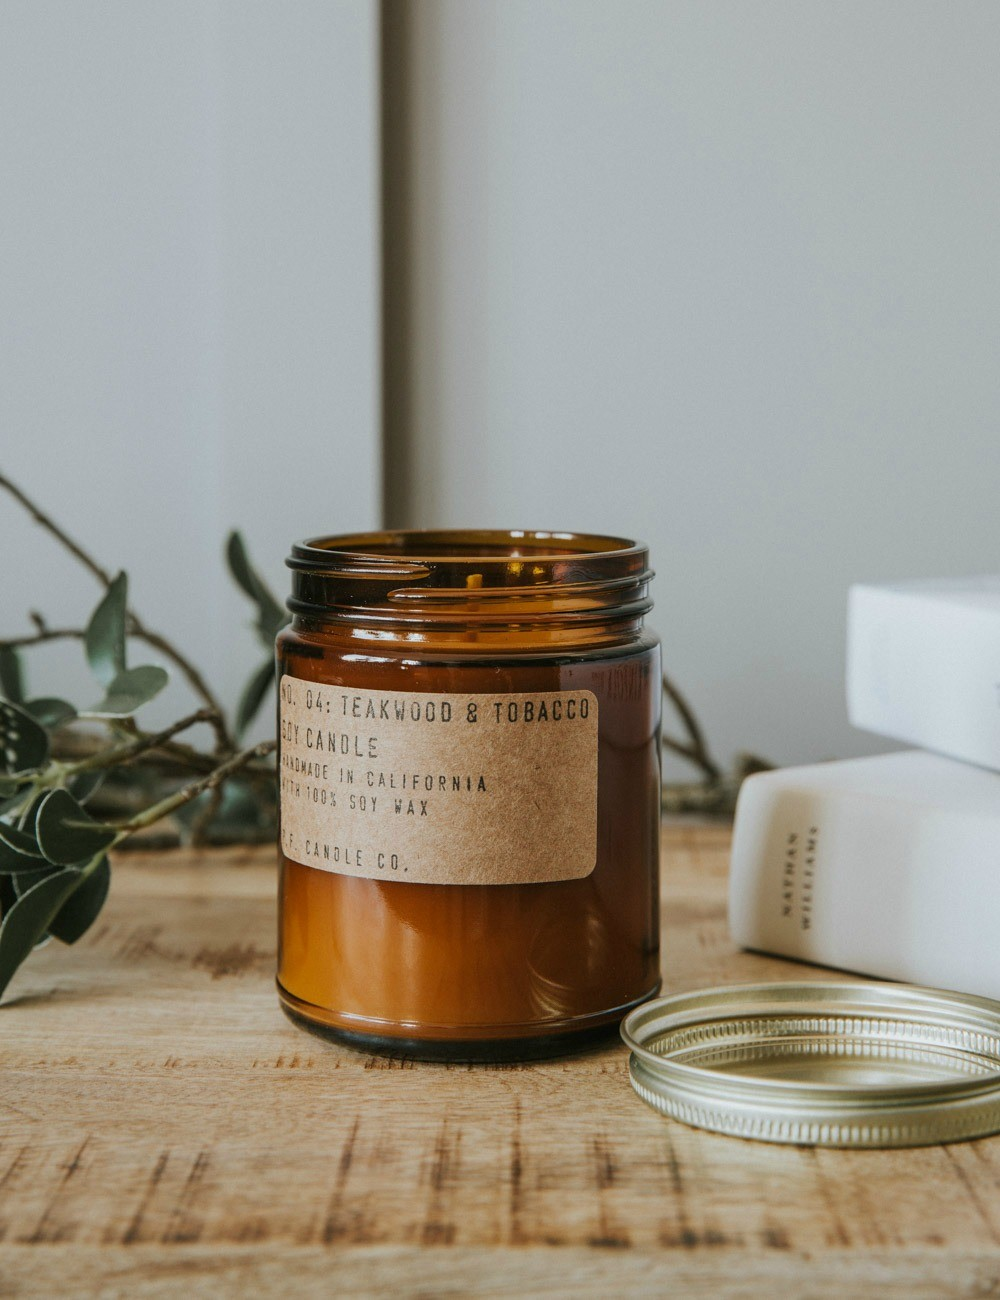 Image credit & candle available from: http://www.roseandgrey.co.uk/p-f-candle-co-no-4-teakwood-tobacco-soy-candle